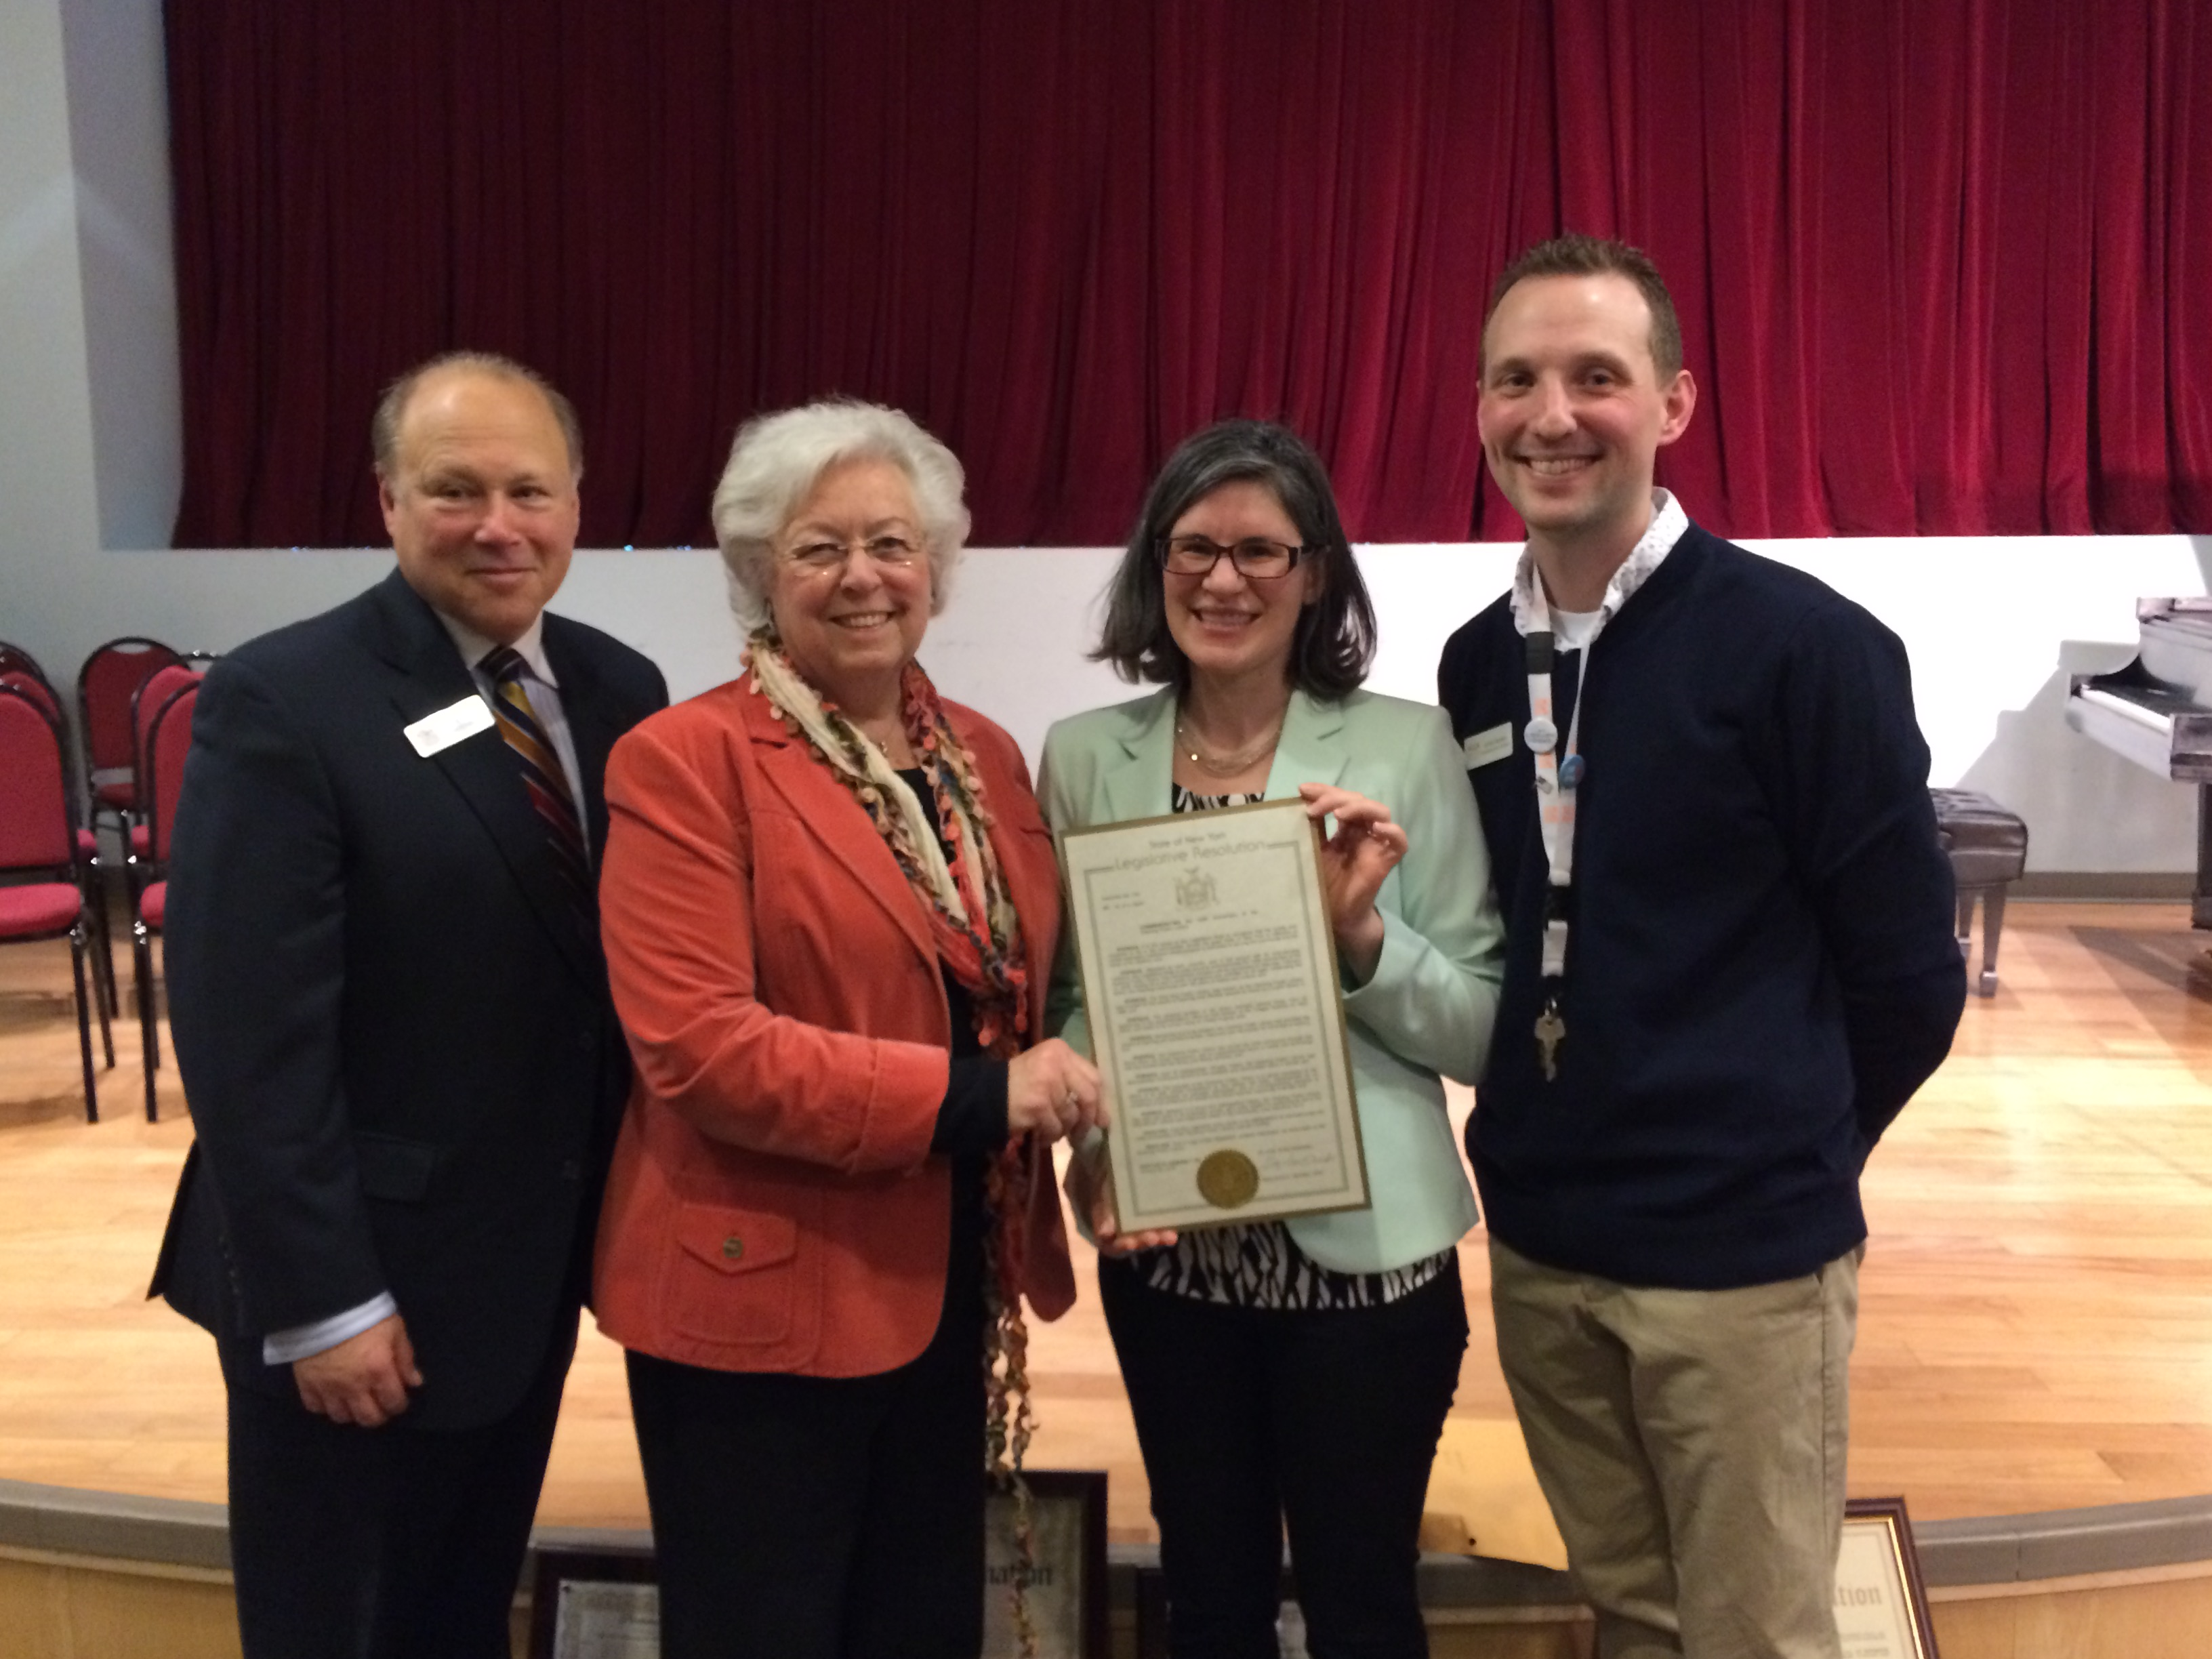 Ossining Public Library recently celebrated its 125th anniversary of serving Ossining. Sandy presented the library with a citation in honor of its dedicated provision of community services.<br />&nbsp;